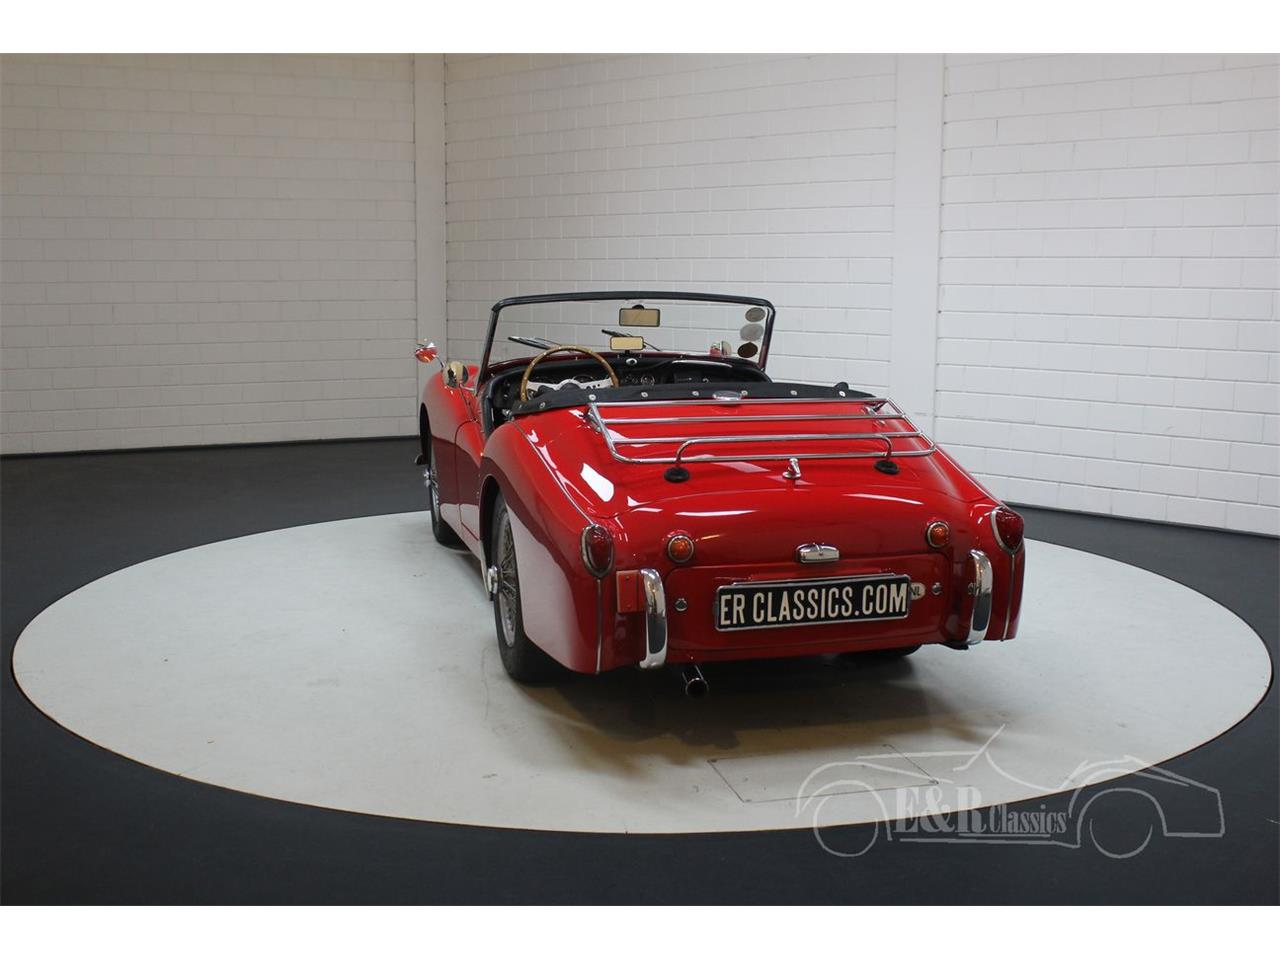 Large Picture of 1960 TR3A - $41,800.00 Offered by E & R Classics - PLXB